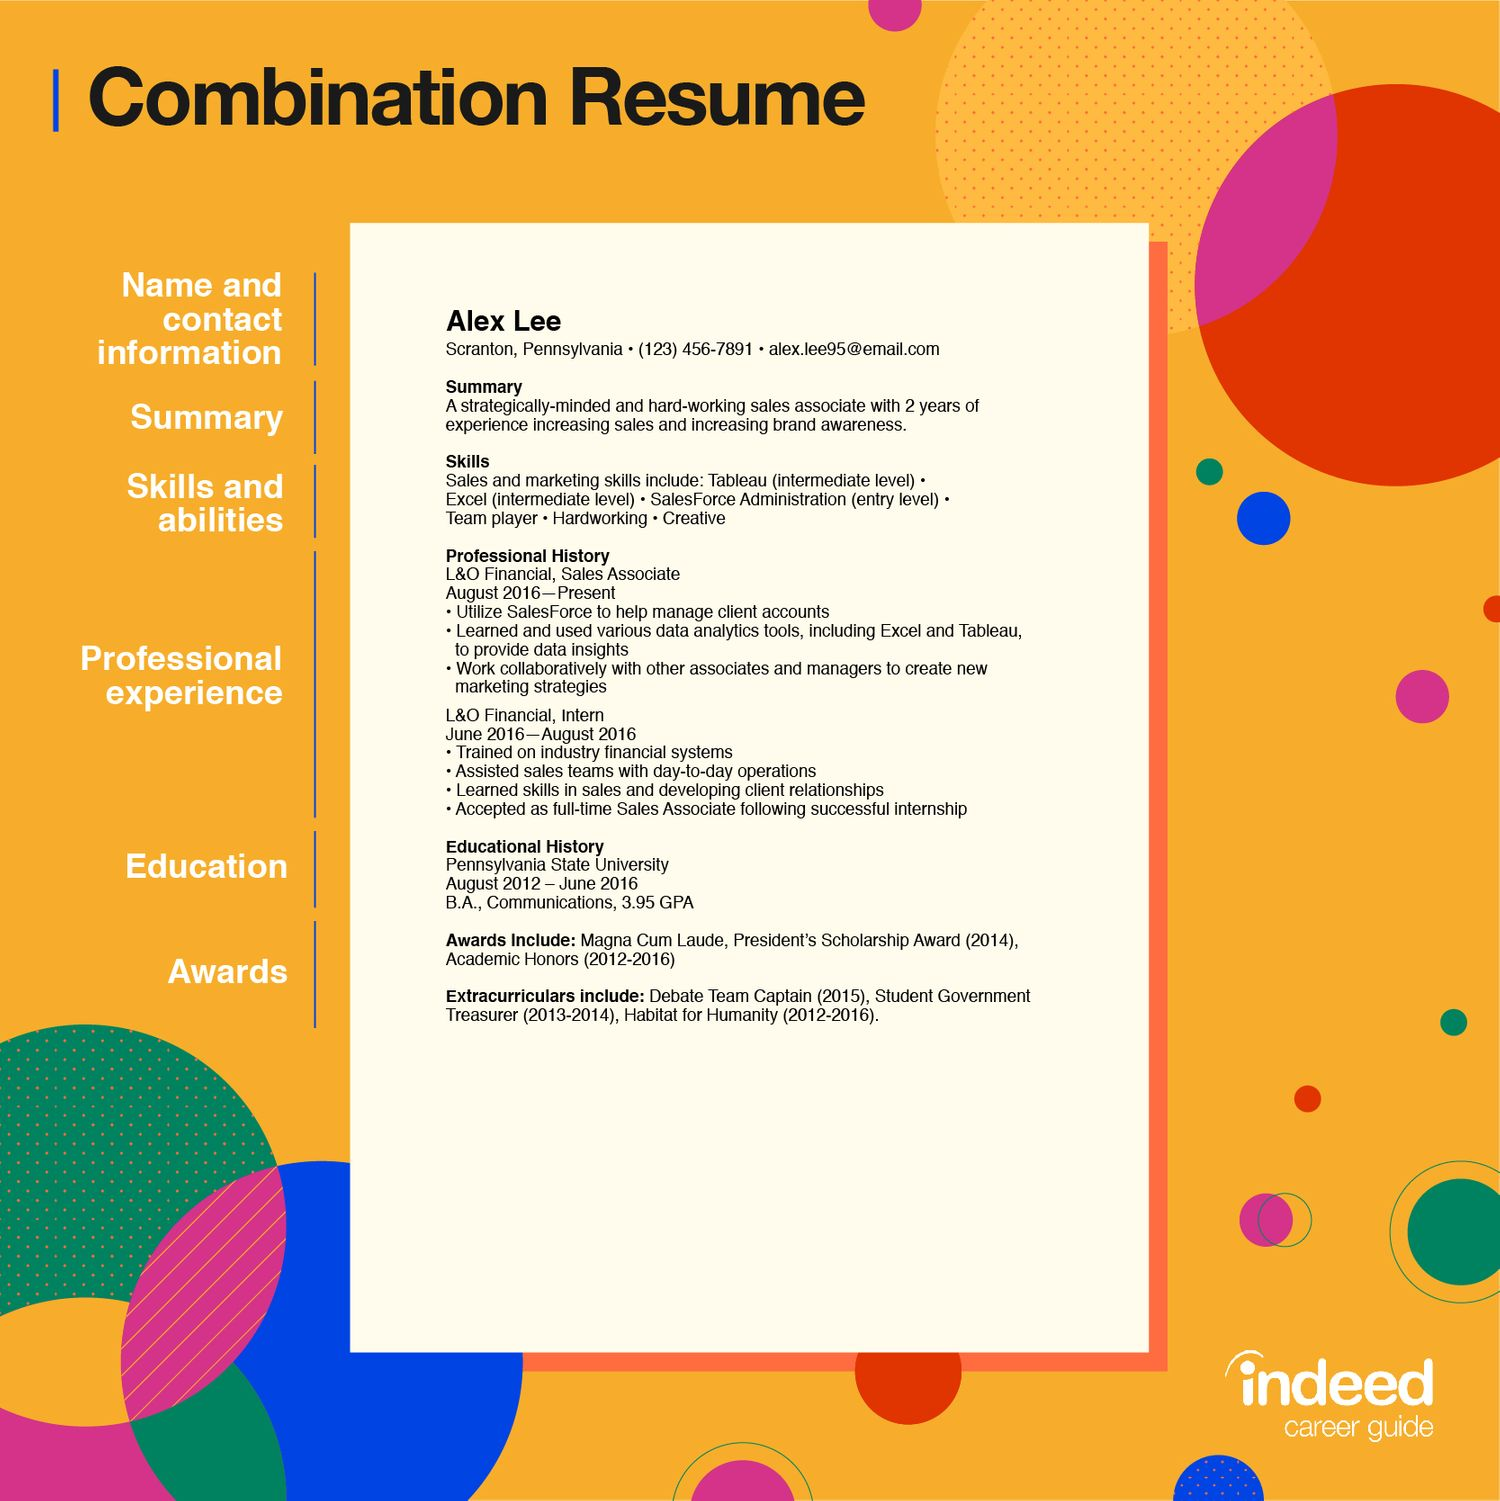 resume format guide tips and examples of the best formats indeed for work history resized Resume Best Resume Format For Long Work History